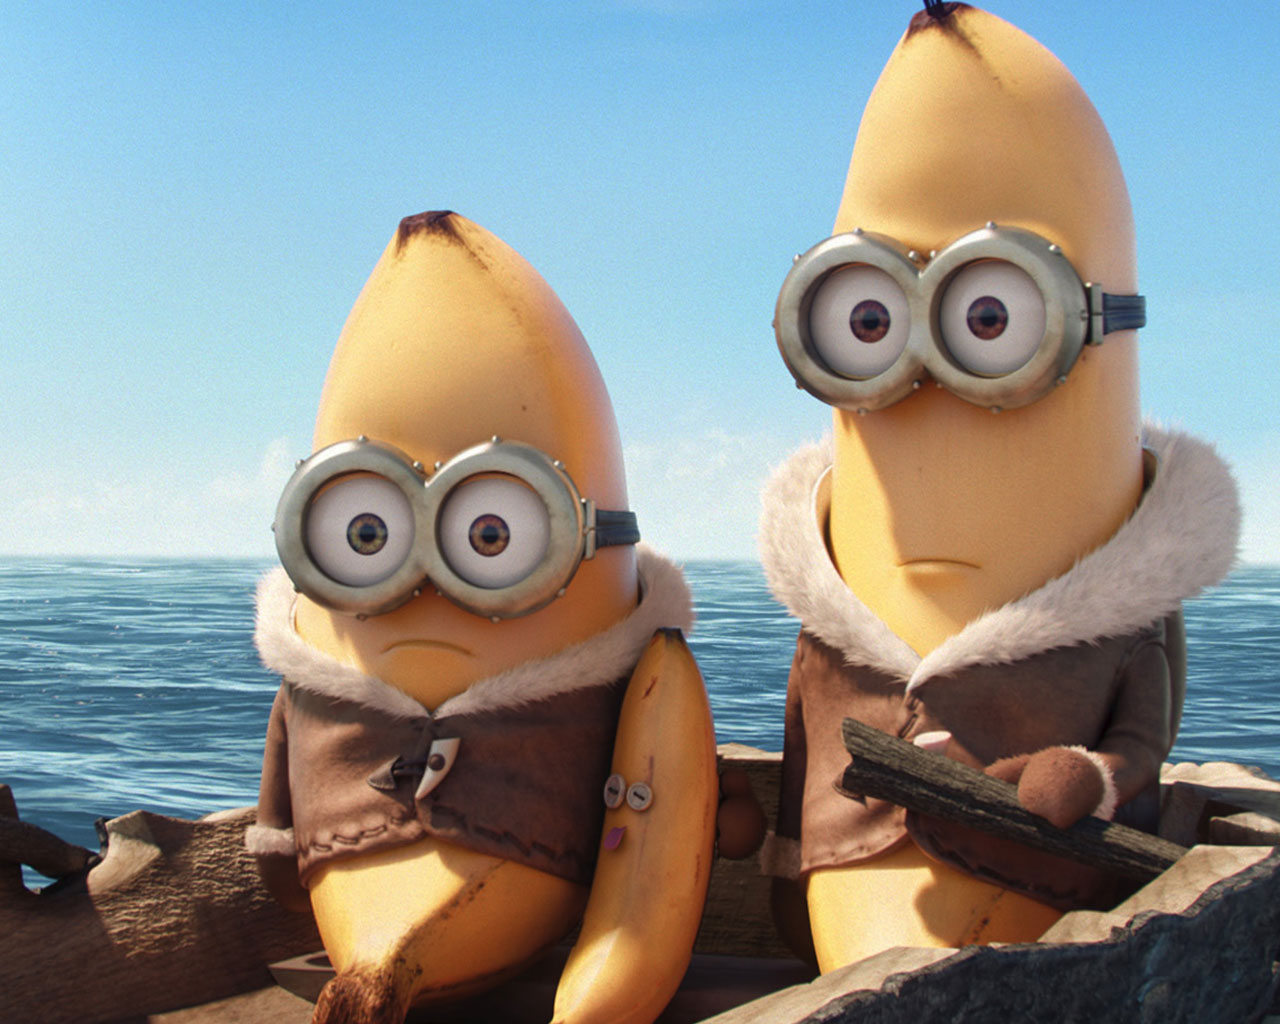 A Cute Collection Of Minions Movie 2015 Desktop Backgrounds 1280x1024